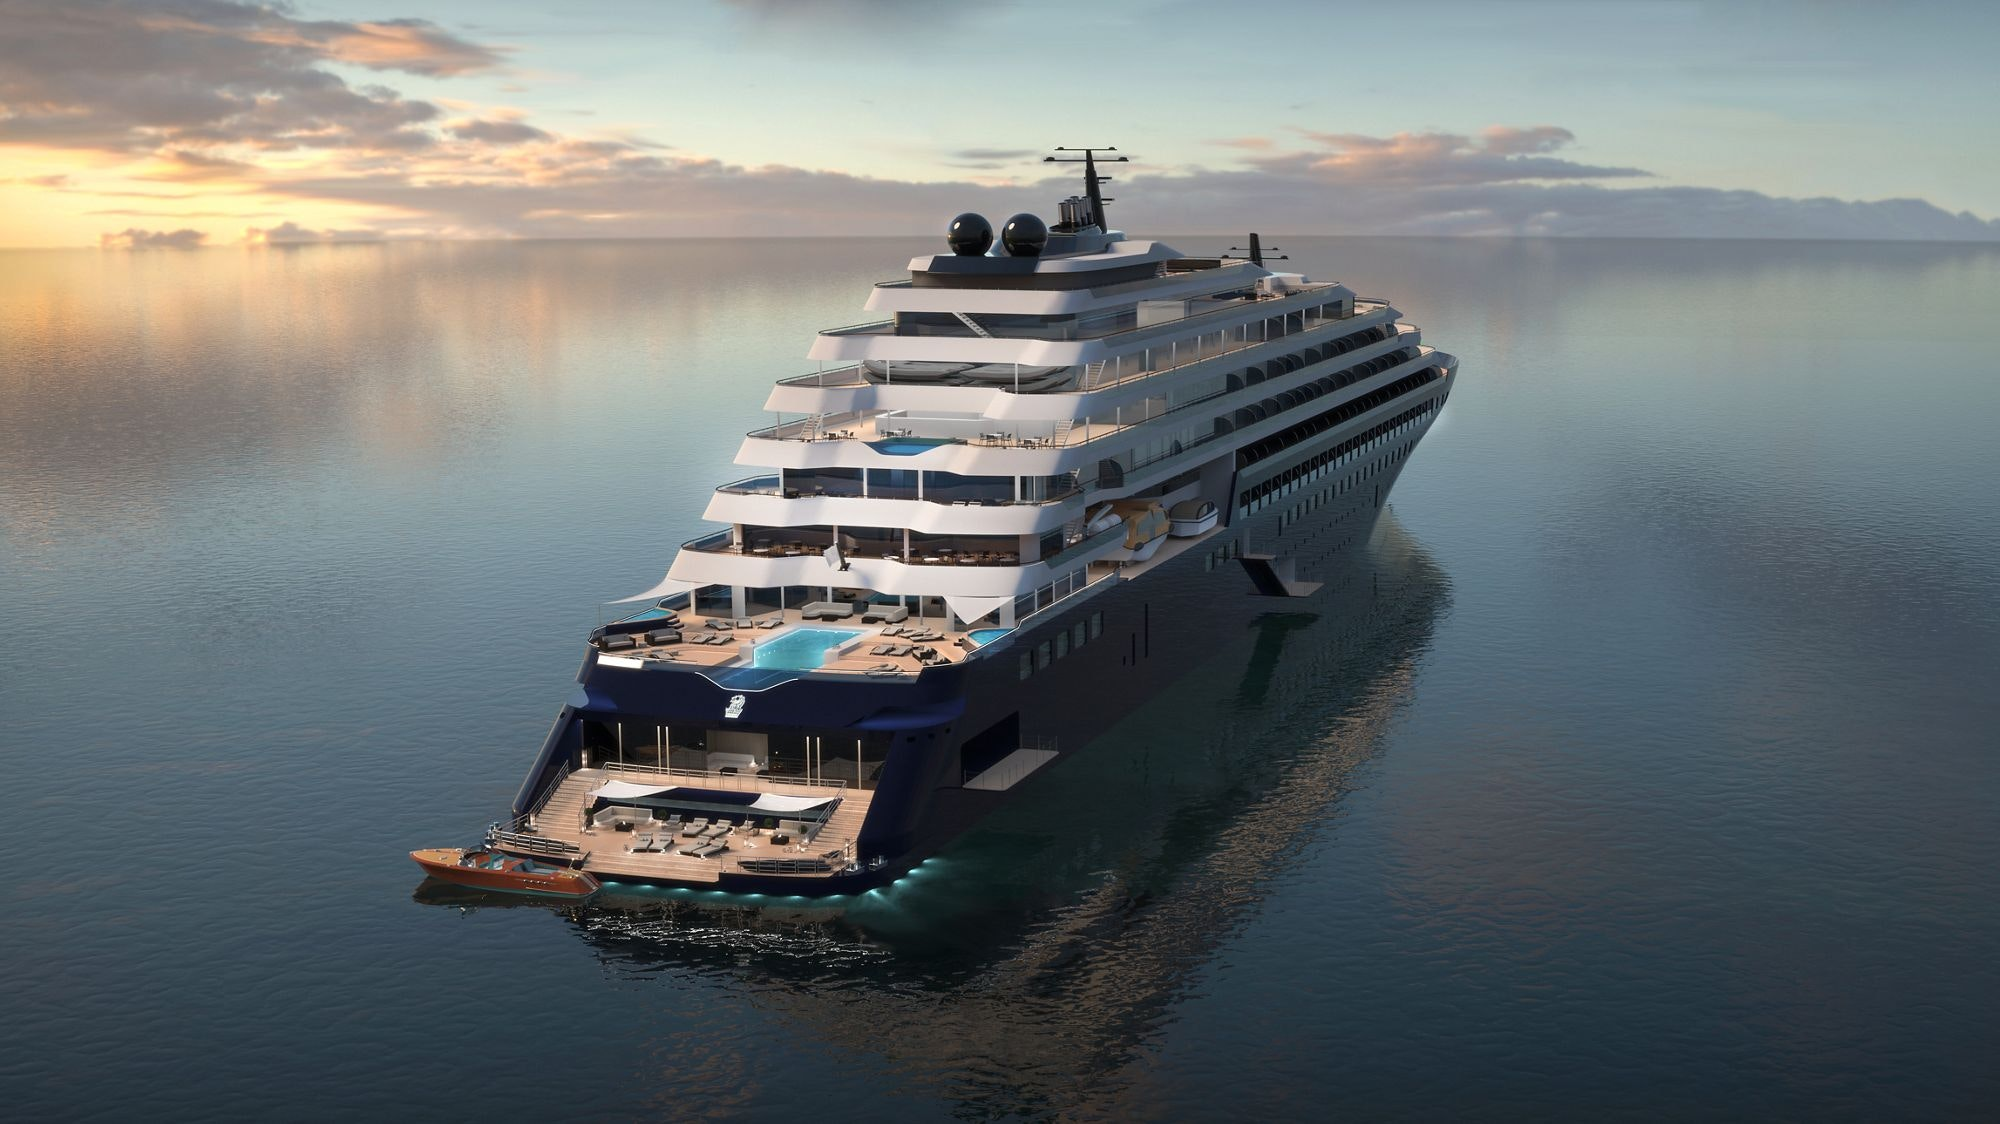 Ritz-Carlton Heads to Sea With Luxury Yachts and Slow Itineraries